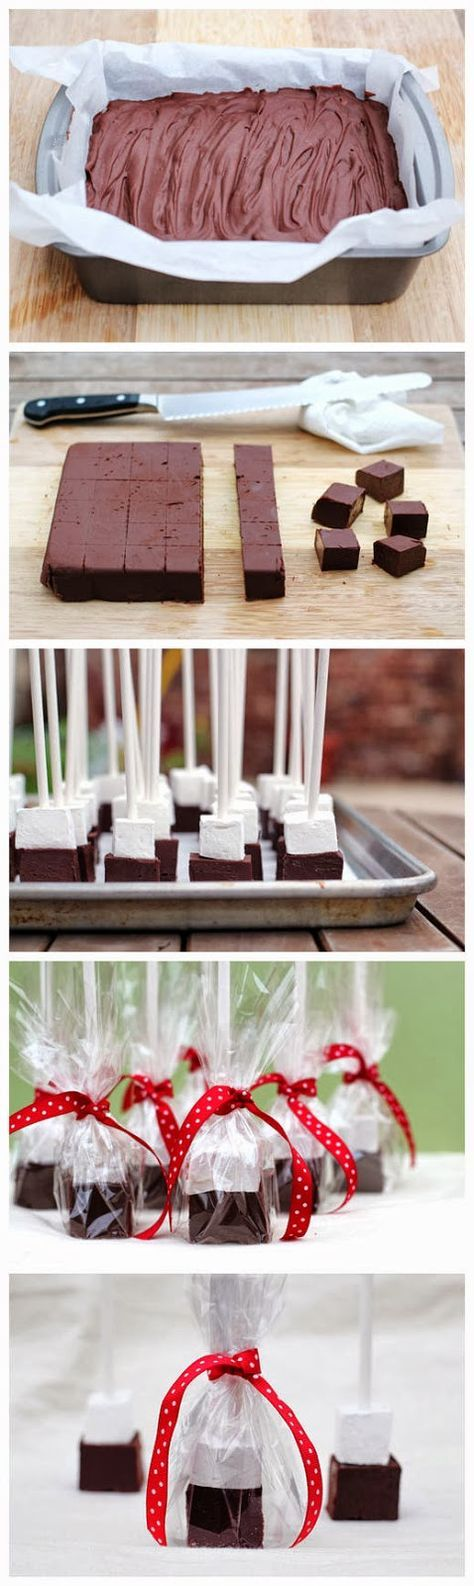 .~Hot Chocolate on a Stick Tutorial~.